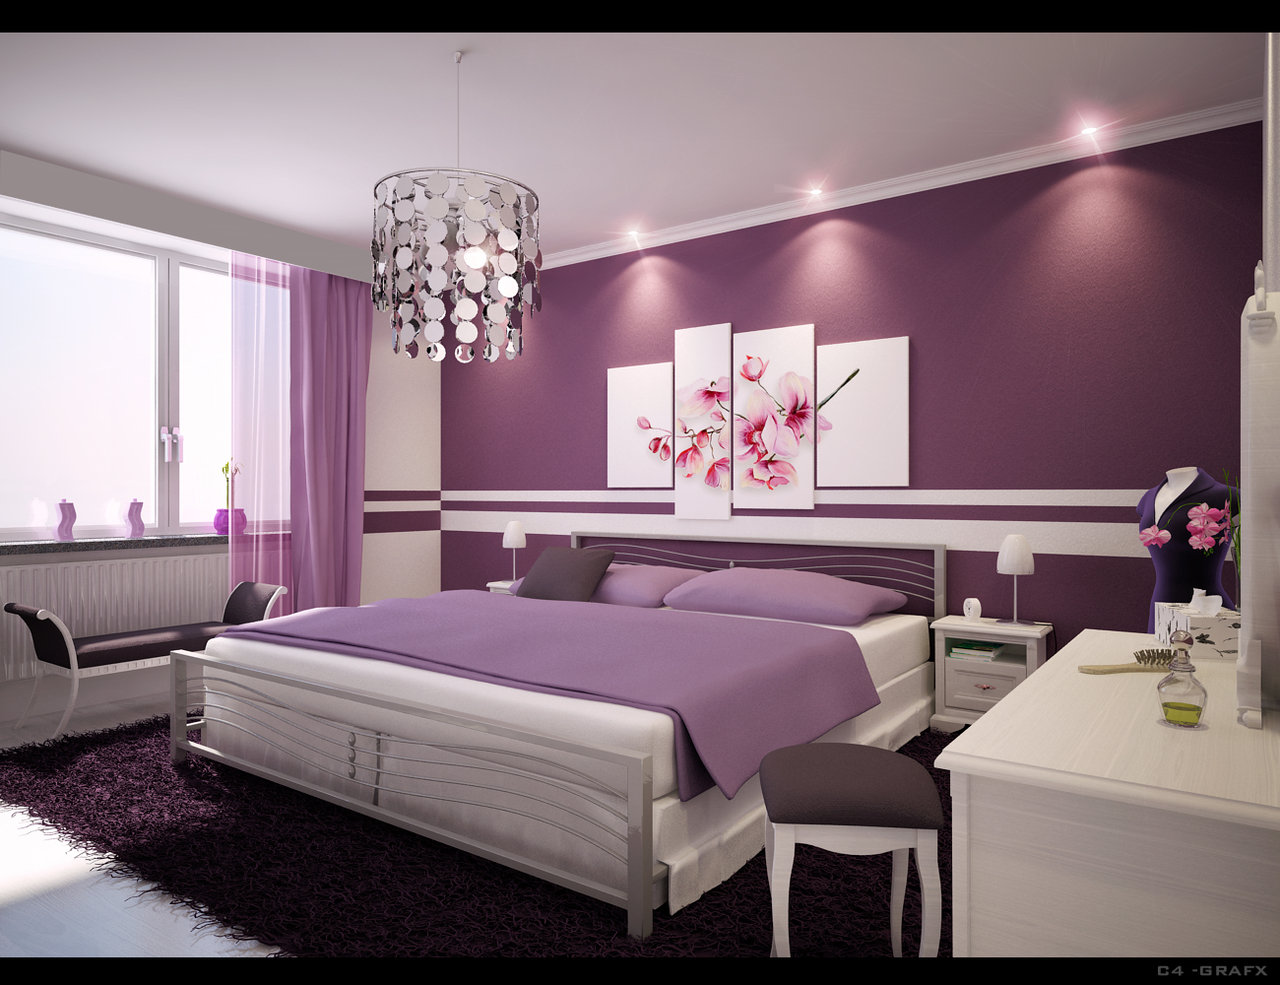 New home designs latest.: Home bedrooms decoration ideas. on Bedroom Decoration Ideas  id=99831